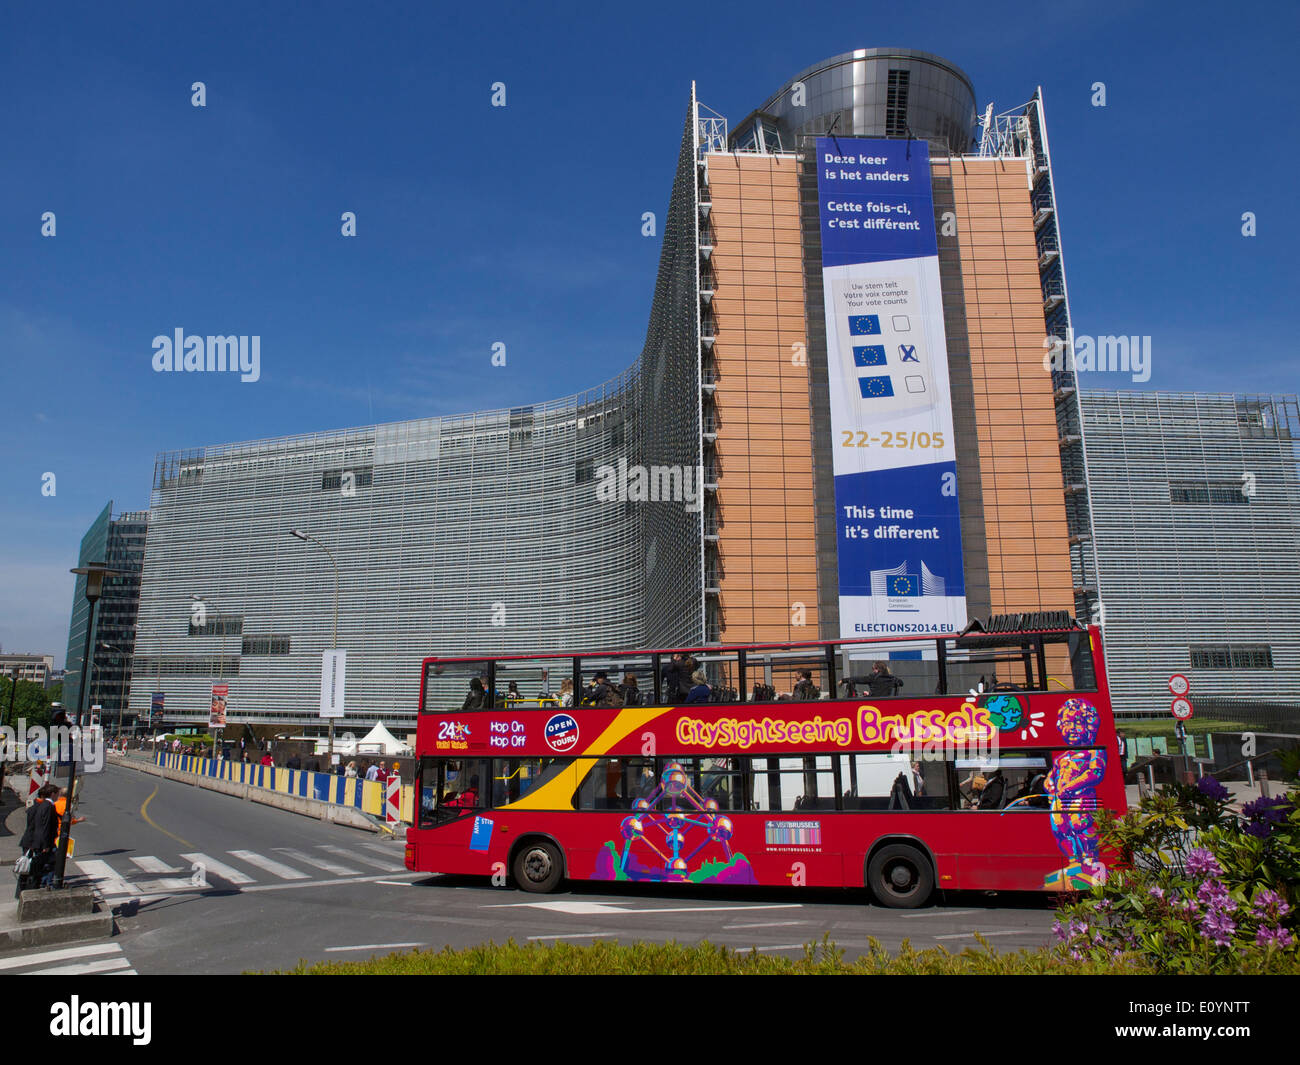 Citytrip sightseeing hop on hop off tourism bus at the Berlaymont building in the EU district of Brussels, Belgium - Stock Image